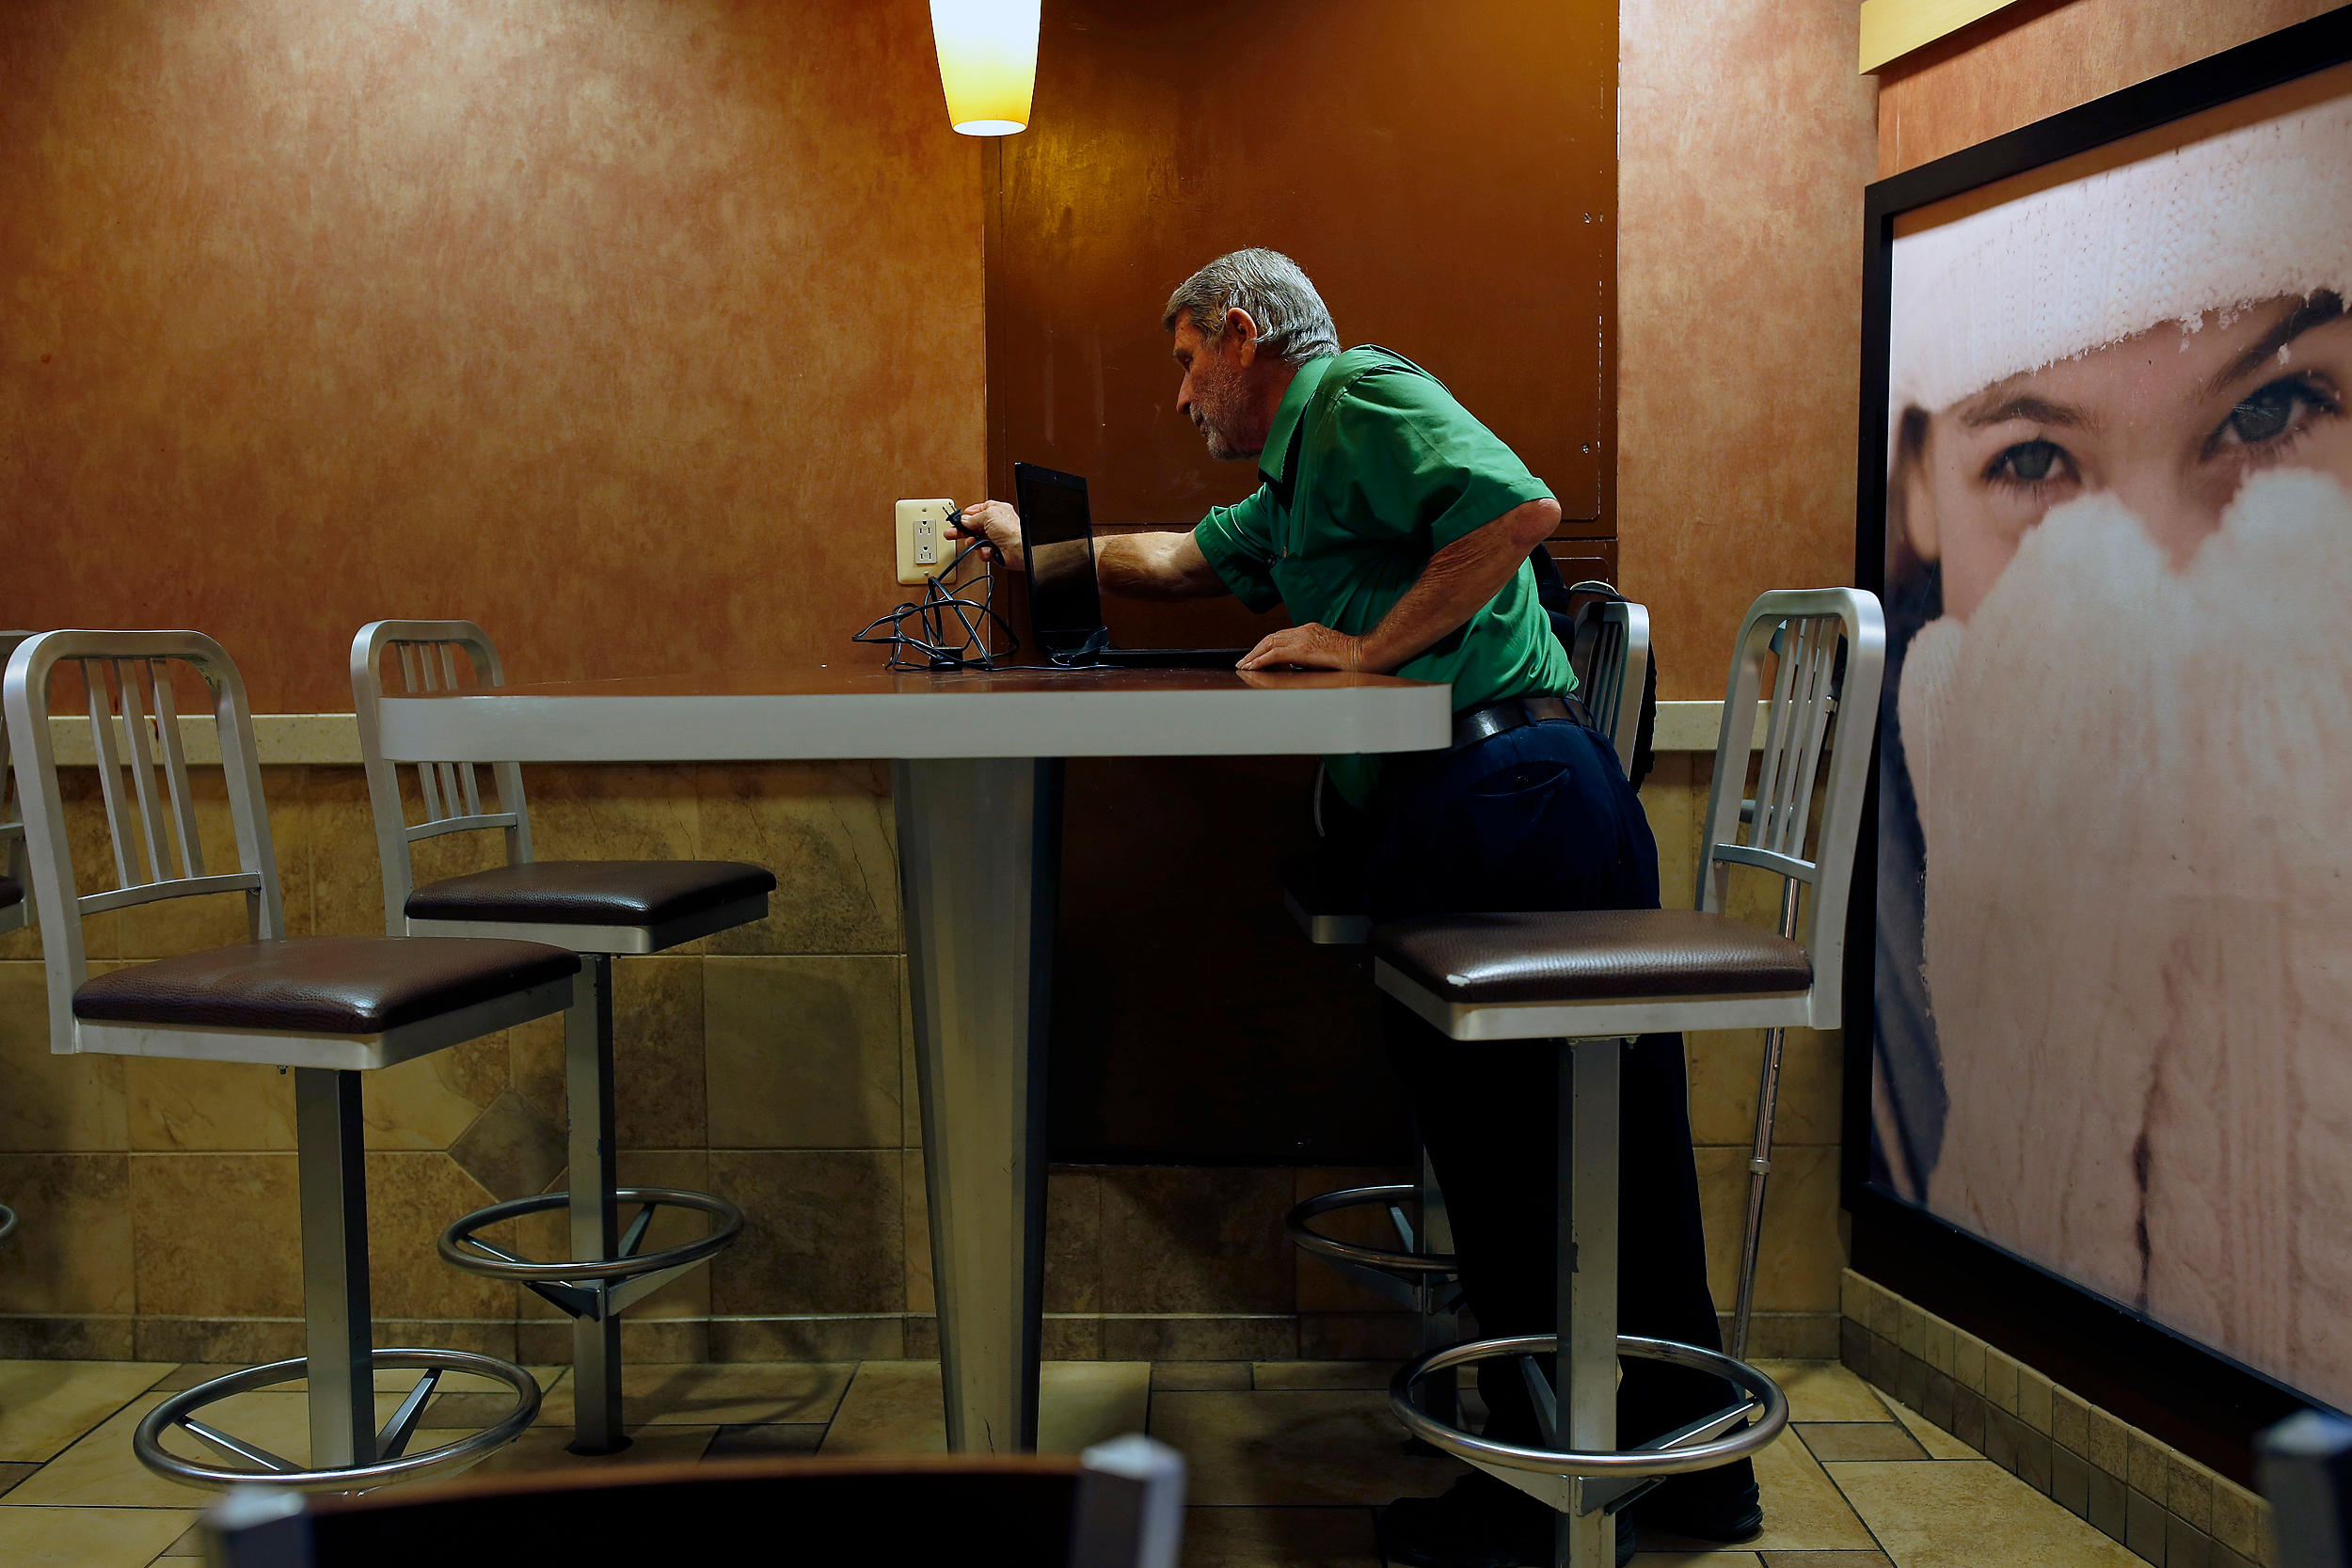 Ron plugs his computer in at the local McDonalds. He checks his email and gets his daily coffee.